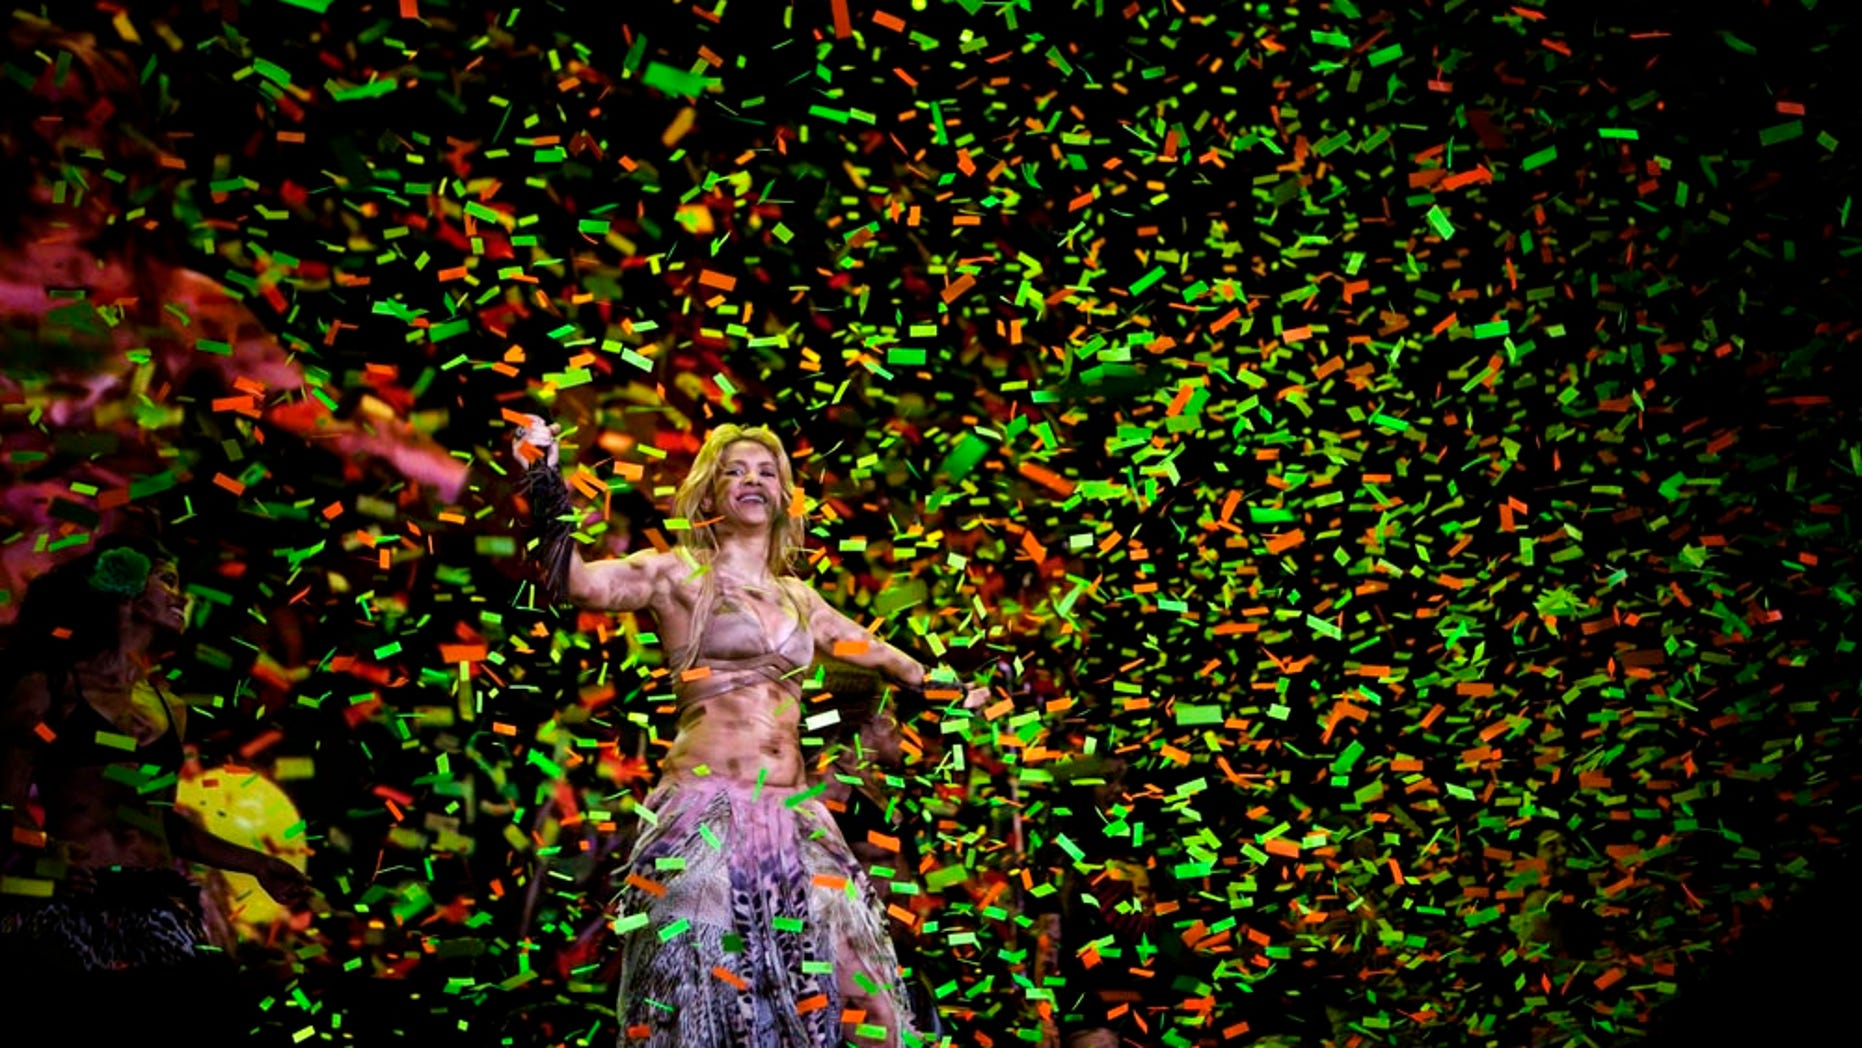 """Colombia's star singer Shakira performs during """"The Sun Comes Out World Tour"""" concert in Barcelona, Spain, Sunday night, May 29, 2011. (AP Photo/Emilio Morenatti)"""